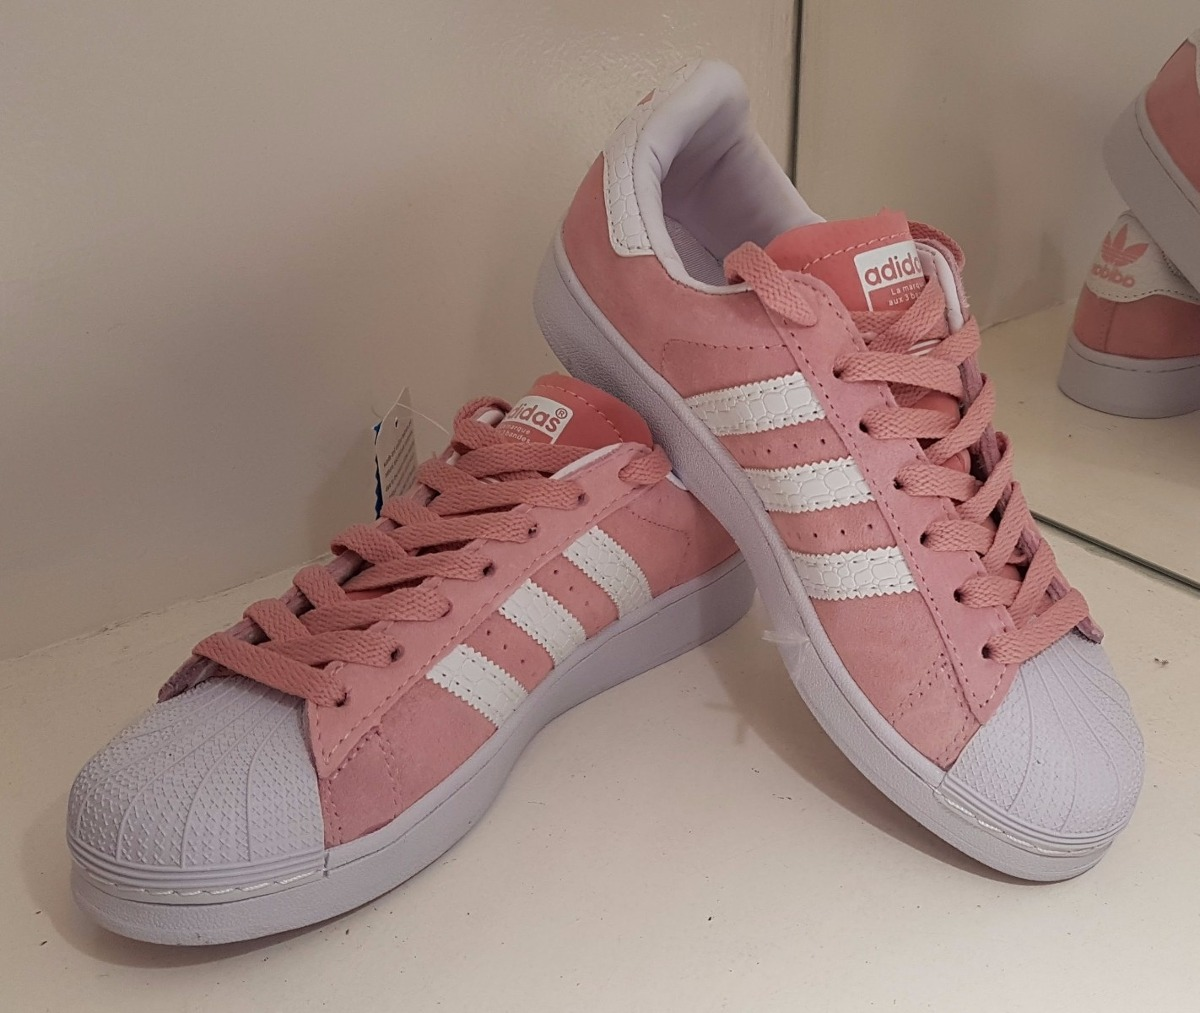 timeless design 8230c 951c4 ... reduced adidas superstar originales gamuza rosa con puntera blanca.  cargando zoom. a5910 08cfc